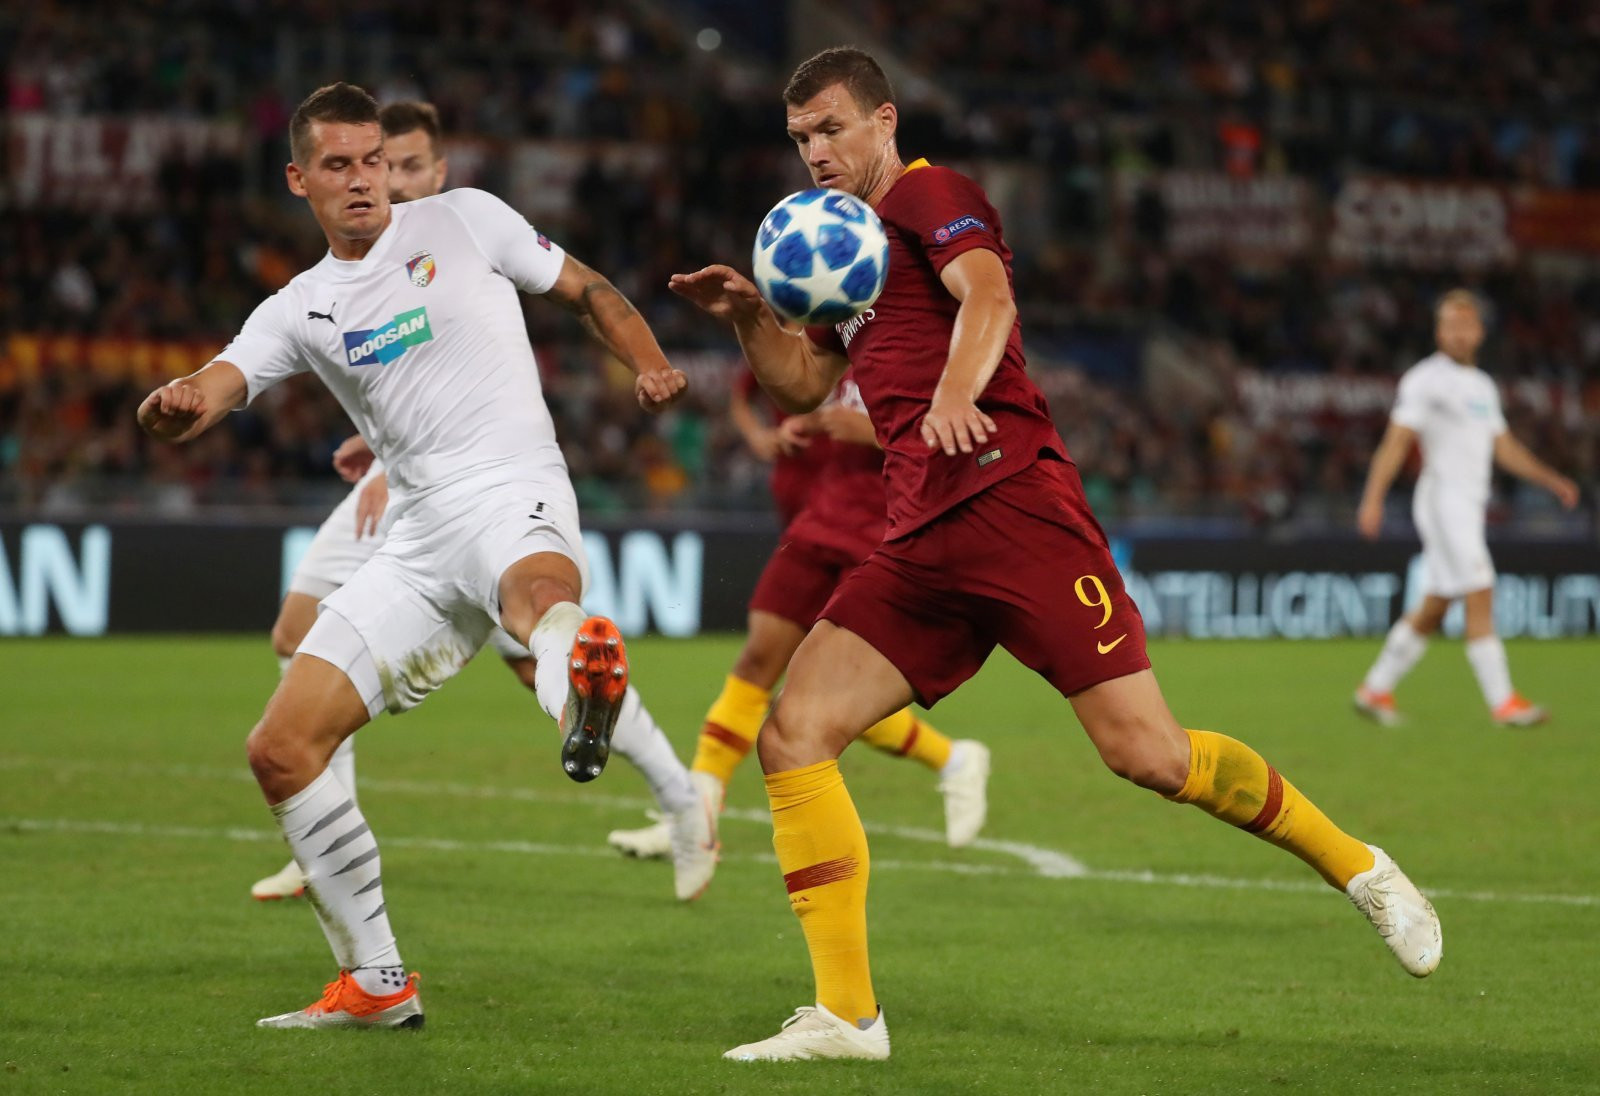 Crystal Palace simply have to replace Christian Benteke with Edin Dzeko